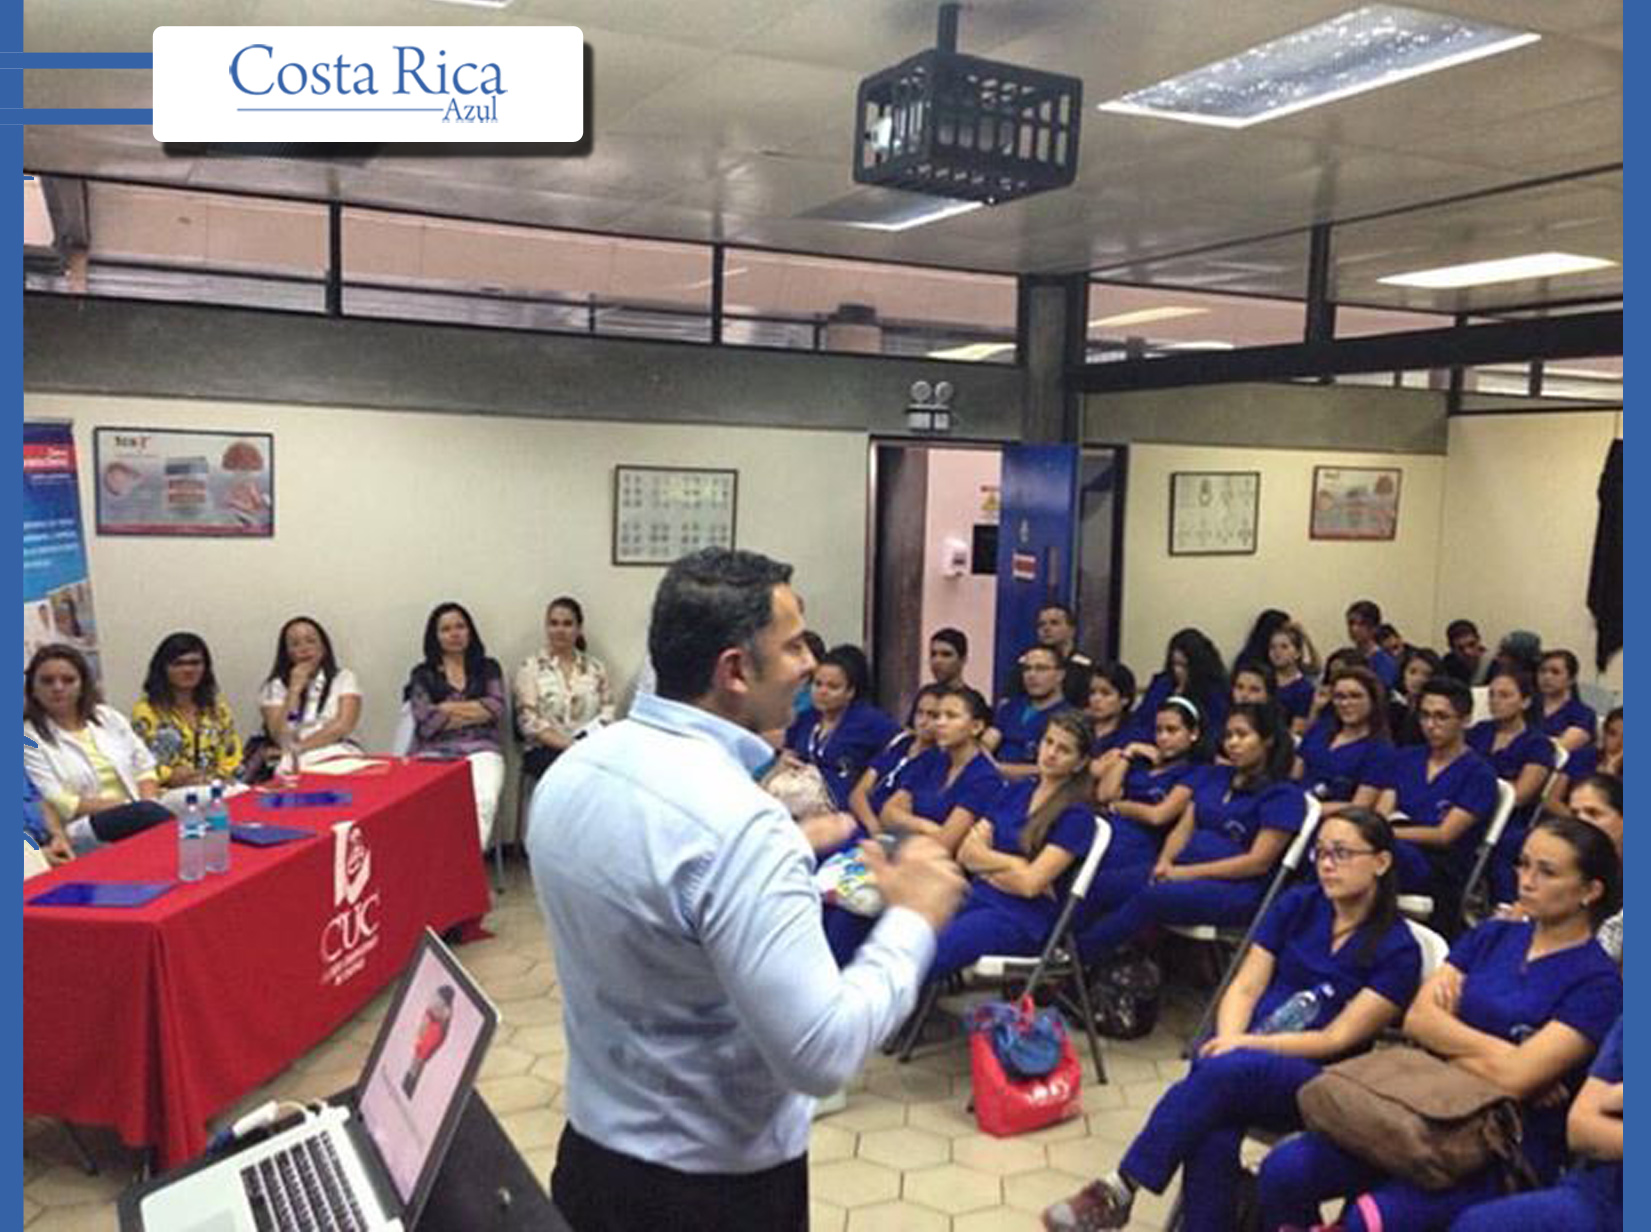 CUC 2 DOCTOR CHRISTIAN RIVERA COSTA RICA AZUL